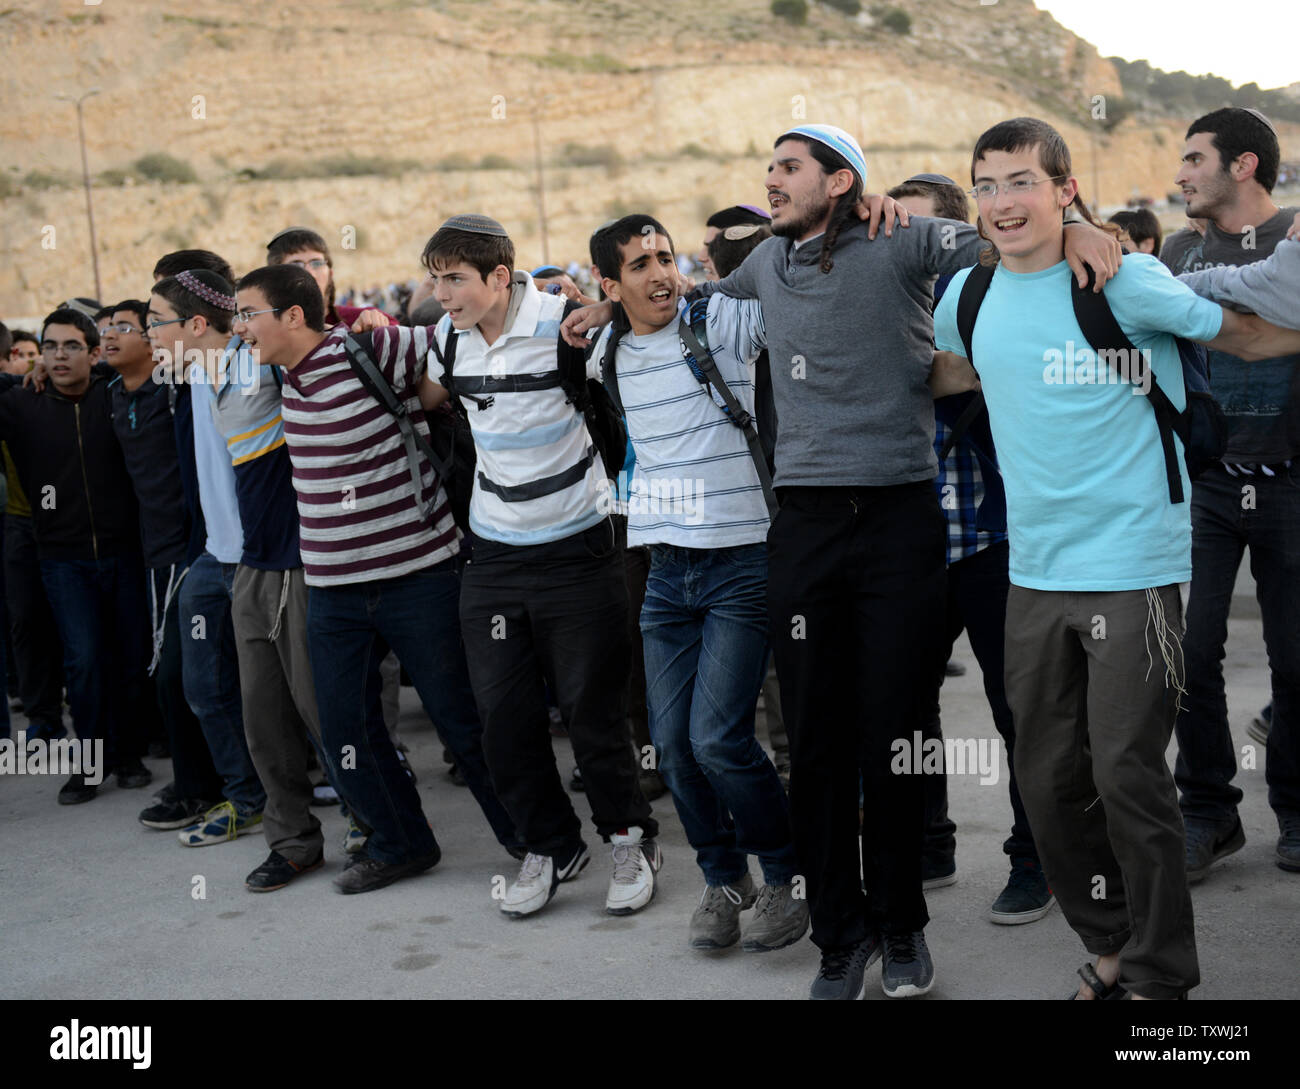 Israeli right-wing settlers chant and dance during a protest calling on the Israeli government to ignore international pressure to freeze settlement building outside the Ma'aleh Adumim Settlement, West Bank,  February 13, 2014. The settlers marched to the unbuilt E1 area in the West Bank and demanded that the state build Jewish settlements in the contested area.UPI/Debbie Hill Stock Photo